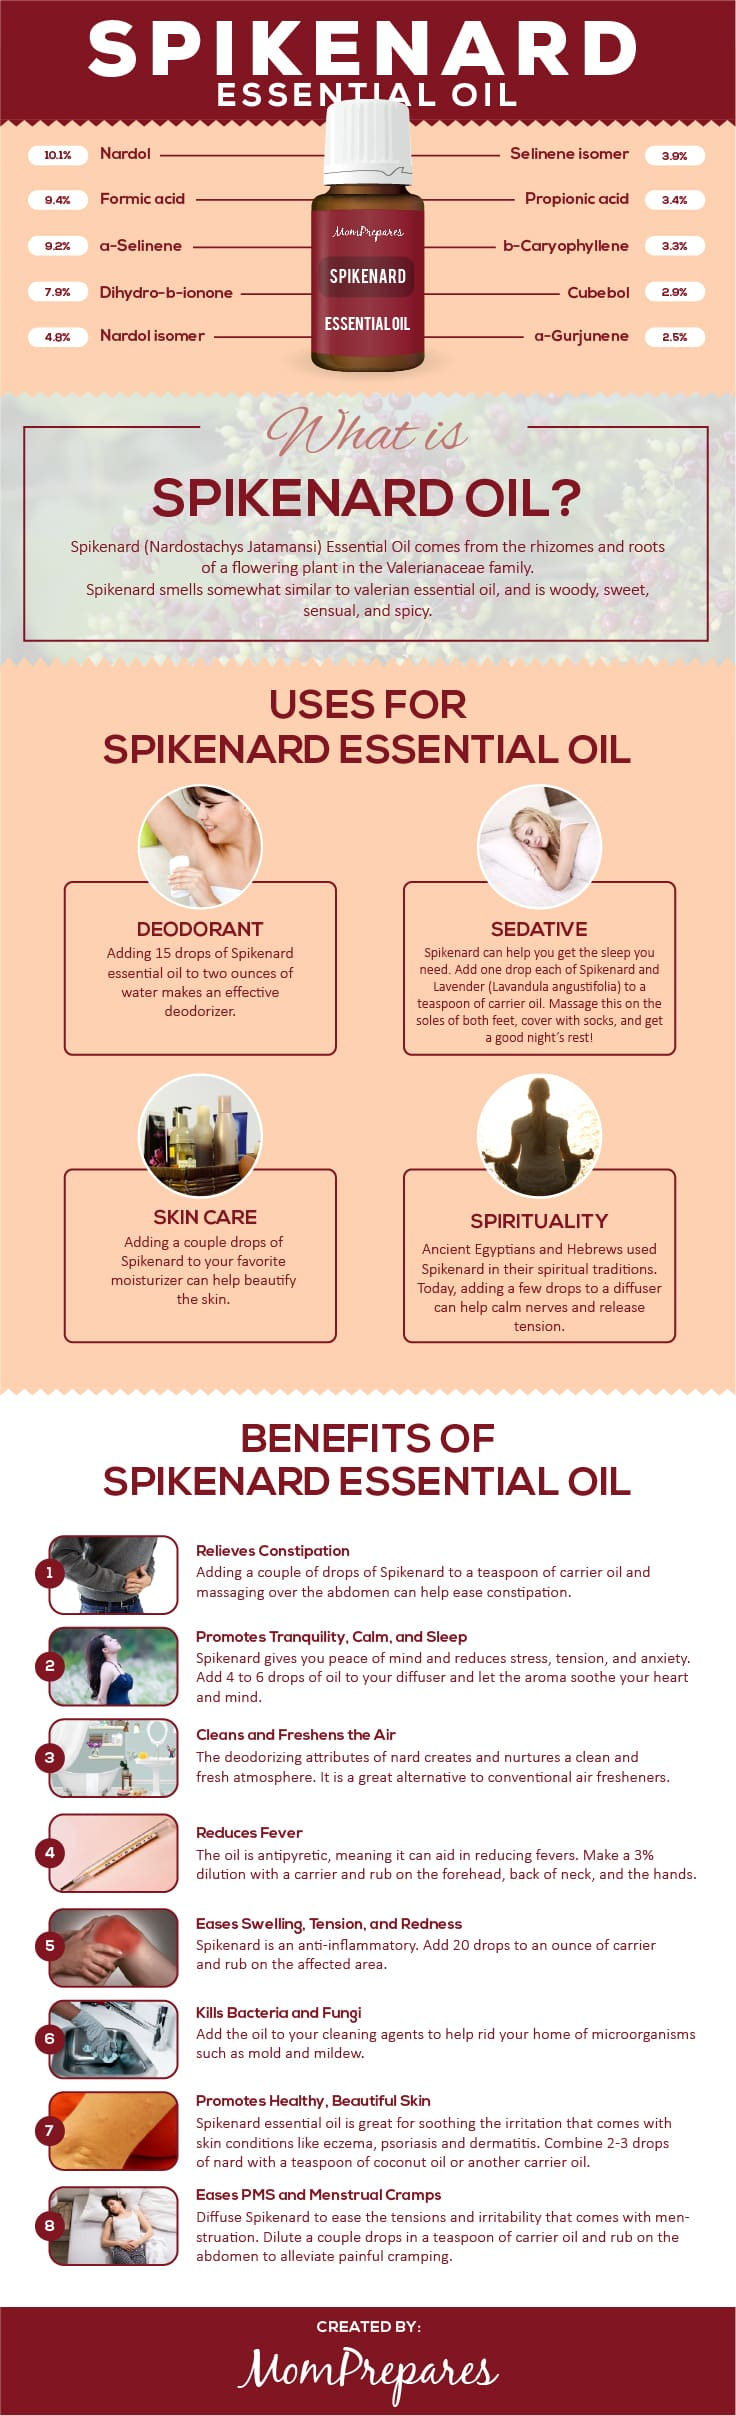 Spikenard infographic